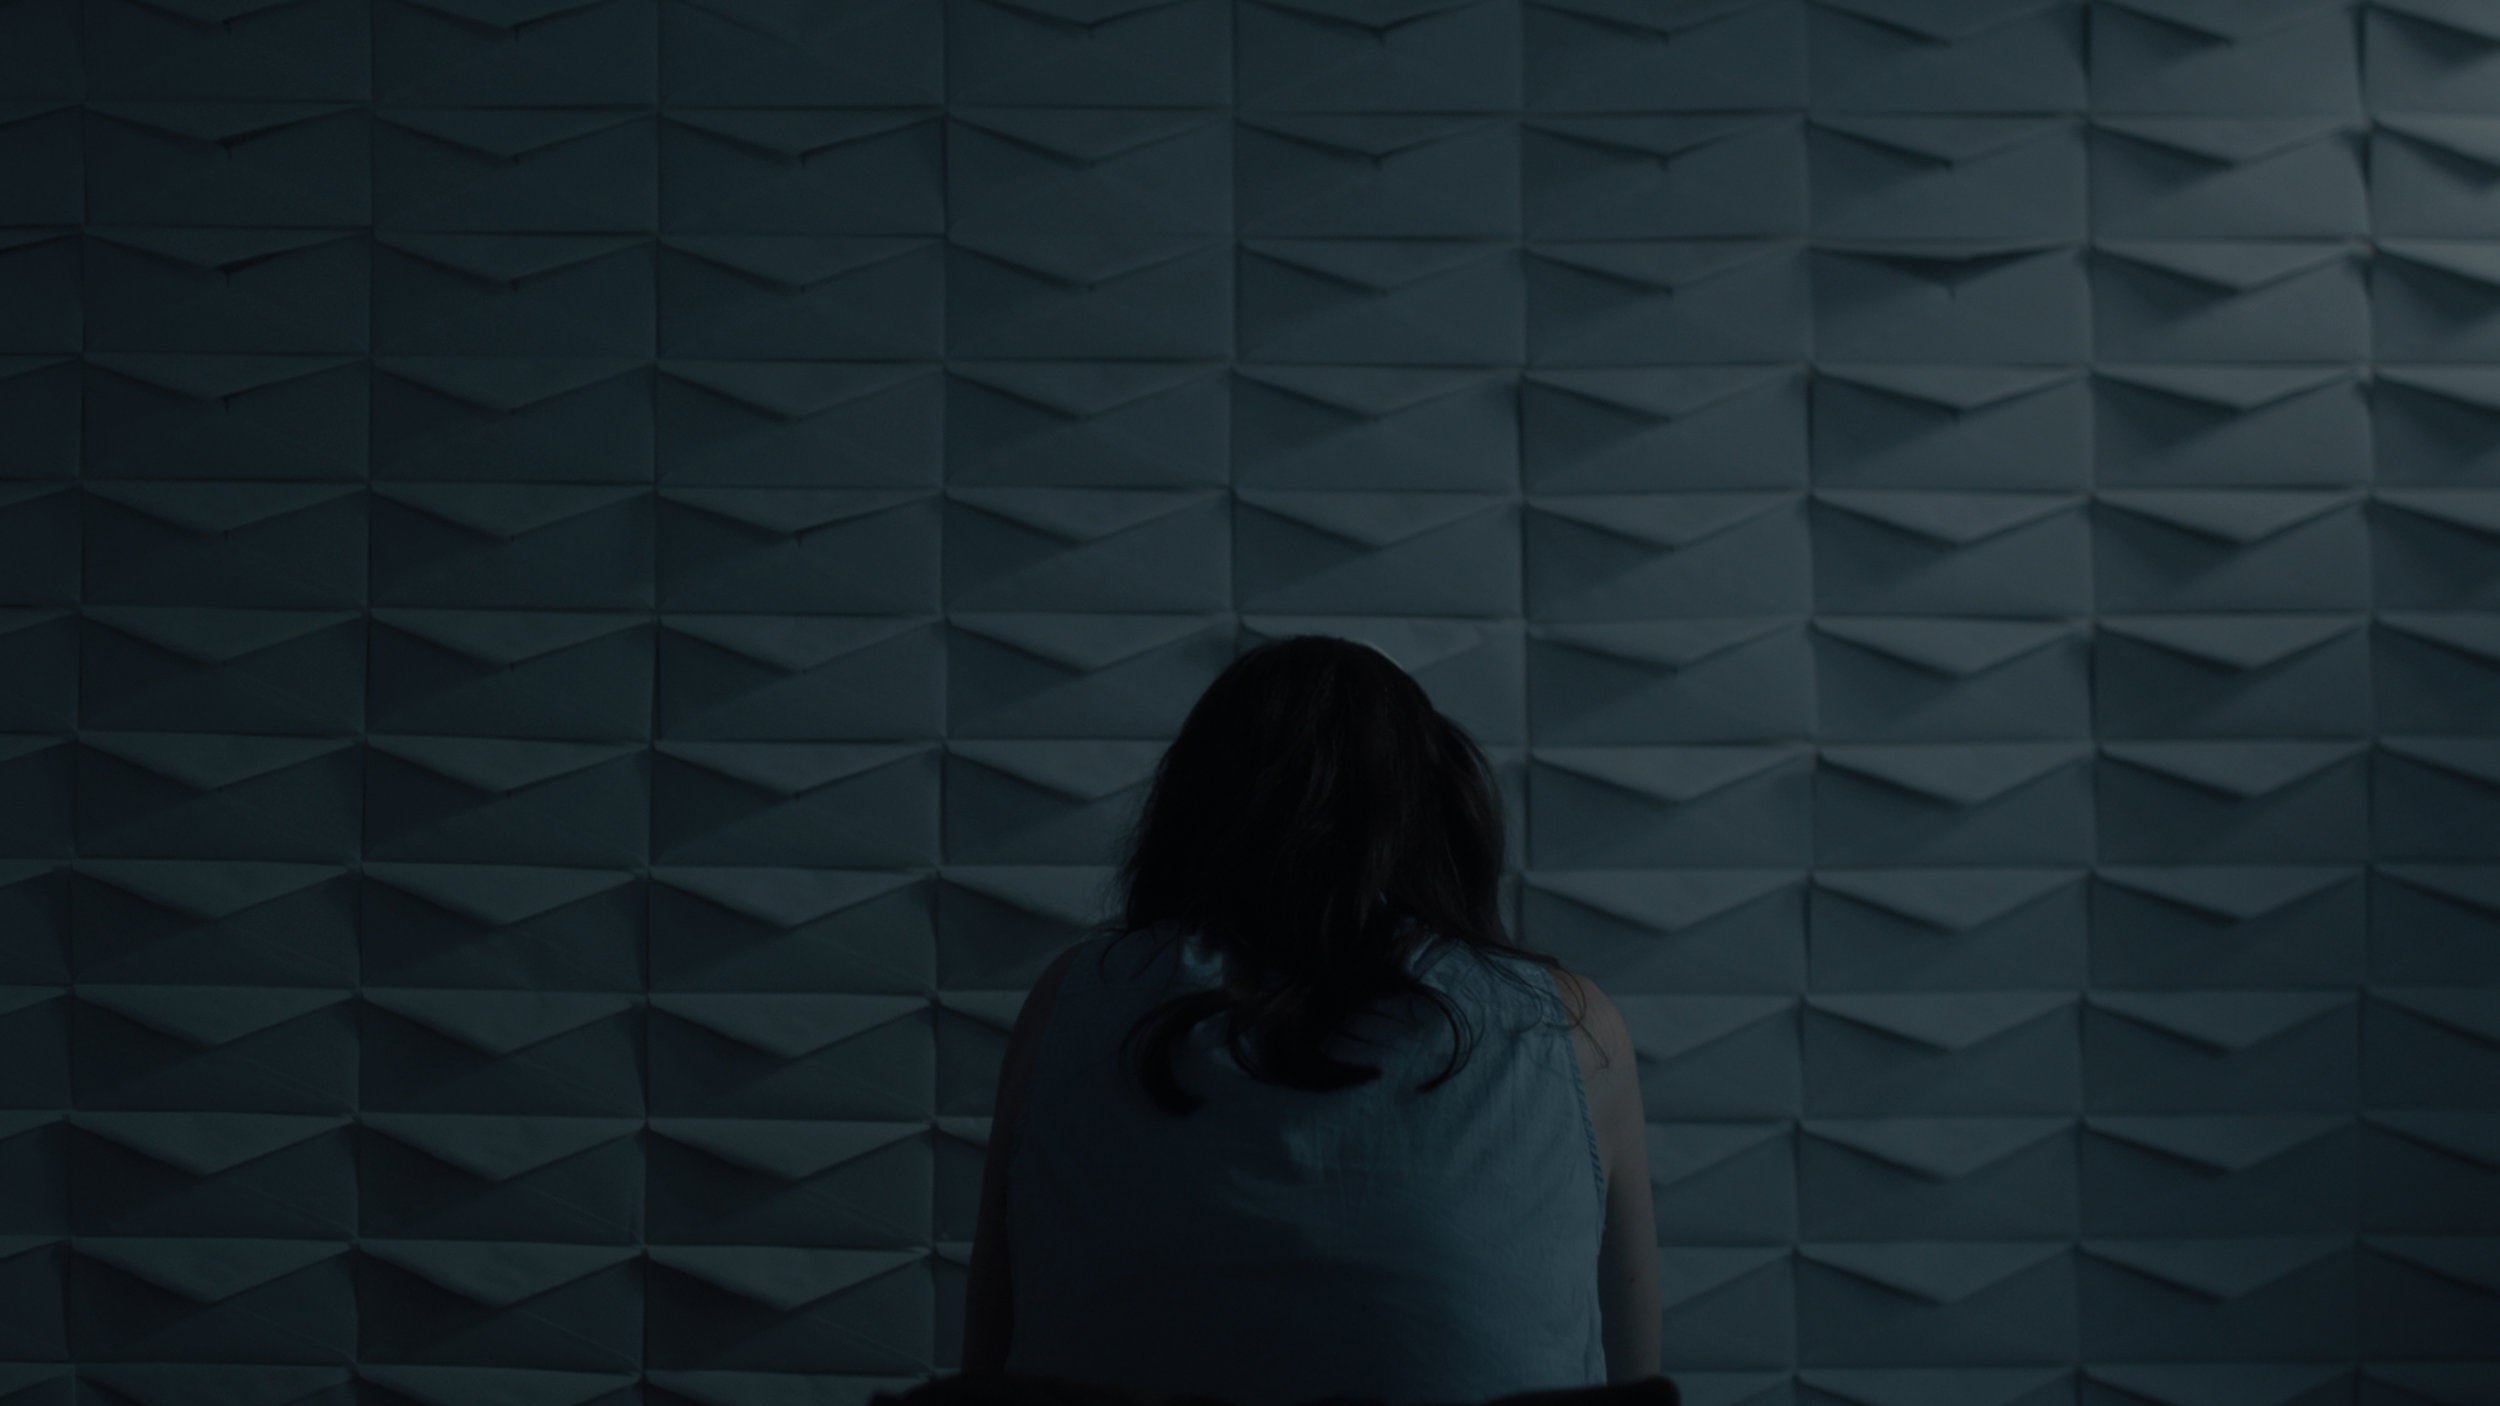 So this is my official favorite shot of the movie. A dolly shot starting from back moving in on her as she is fighting the pain of her recent wisdom teeth removal. The production designer did a great job with the envelopes, it really adds to the scene. I used an astra LED panel w/ opal to light the wall with two 2x3 flags cutting down on the spill and giving more of a strip of light. On her I used the Lit Mat w/ full grid and the egg crate to make her pop a little more.